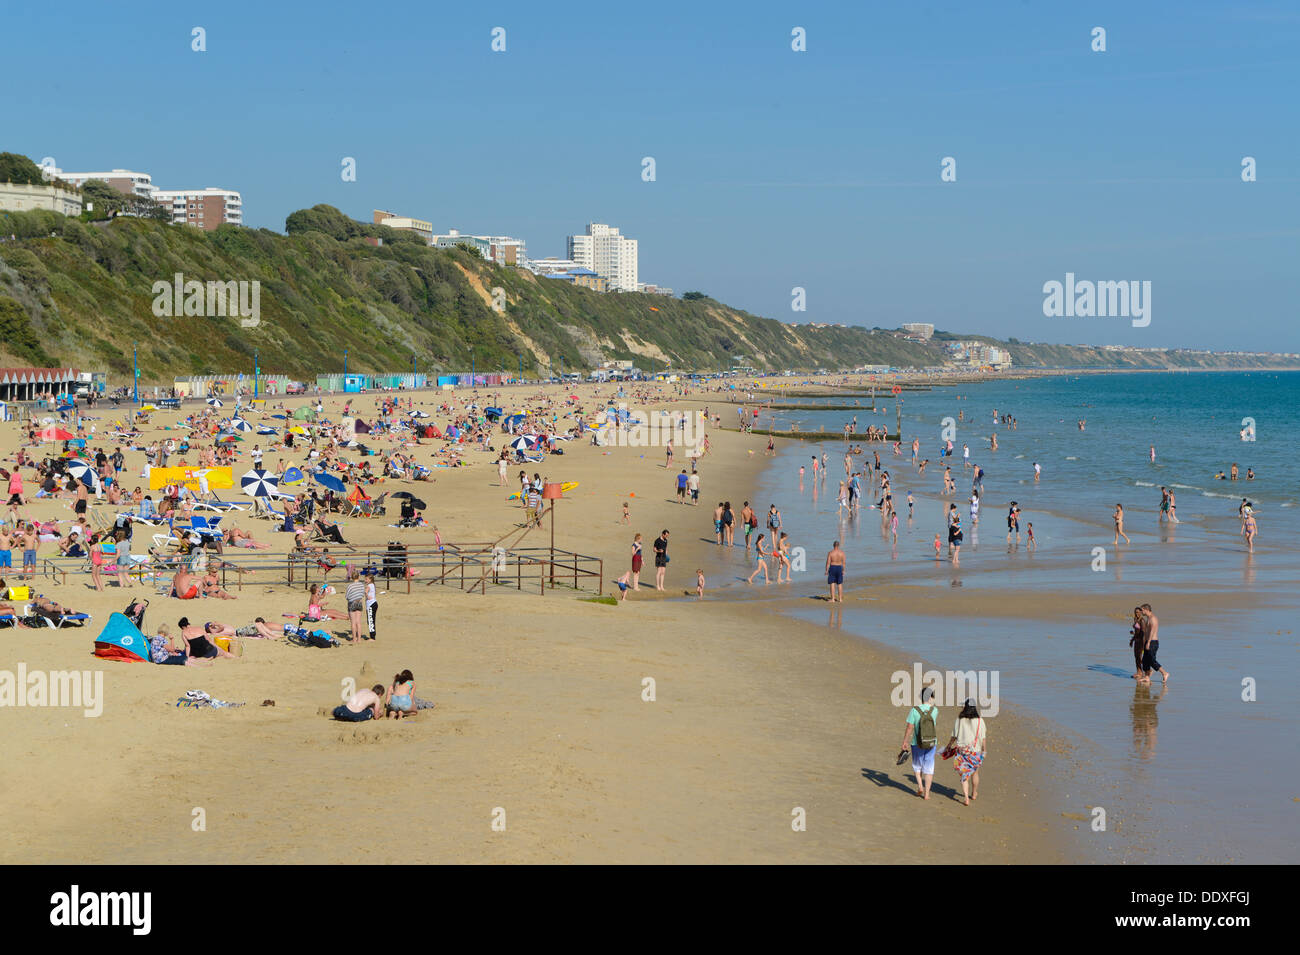 A wide shot of Bournemouth beach taken from the pier during summer in the southern county of Dorset. - Stock Image